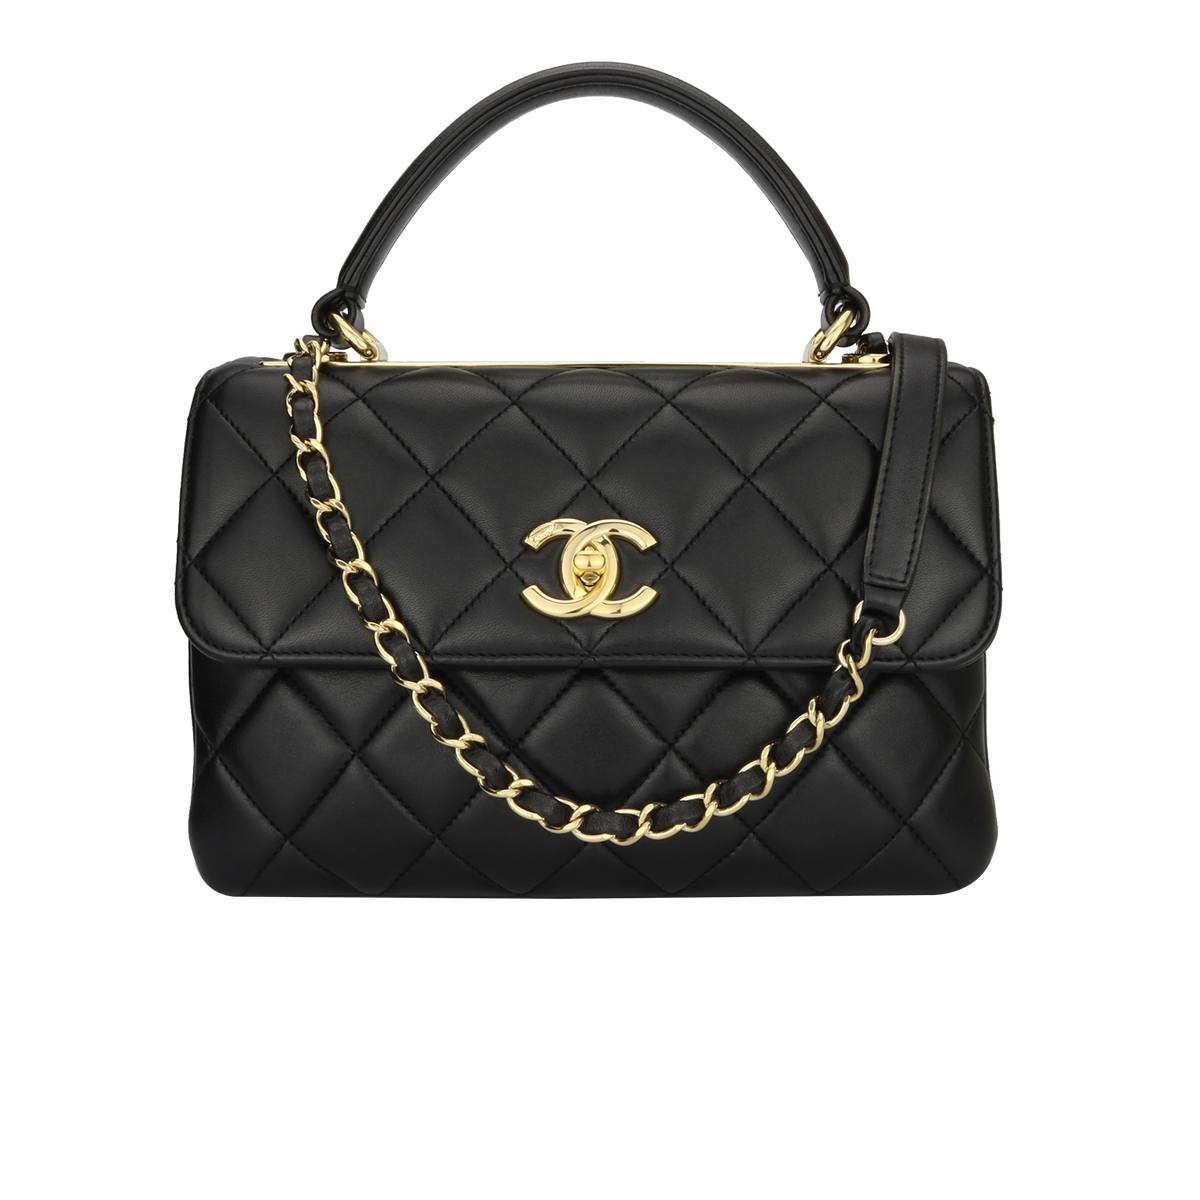 3cad0d70a8b952 Chanel Trendy Cc Bag 2017 | Stanford Center for Opportunity Policy ...